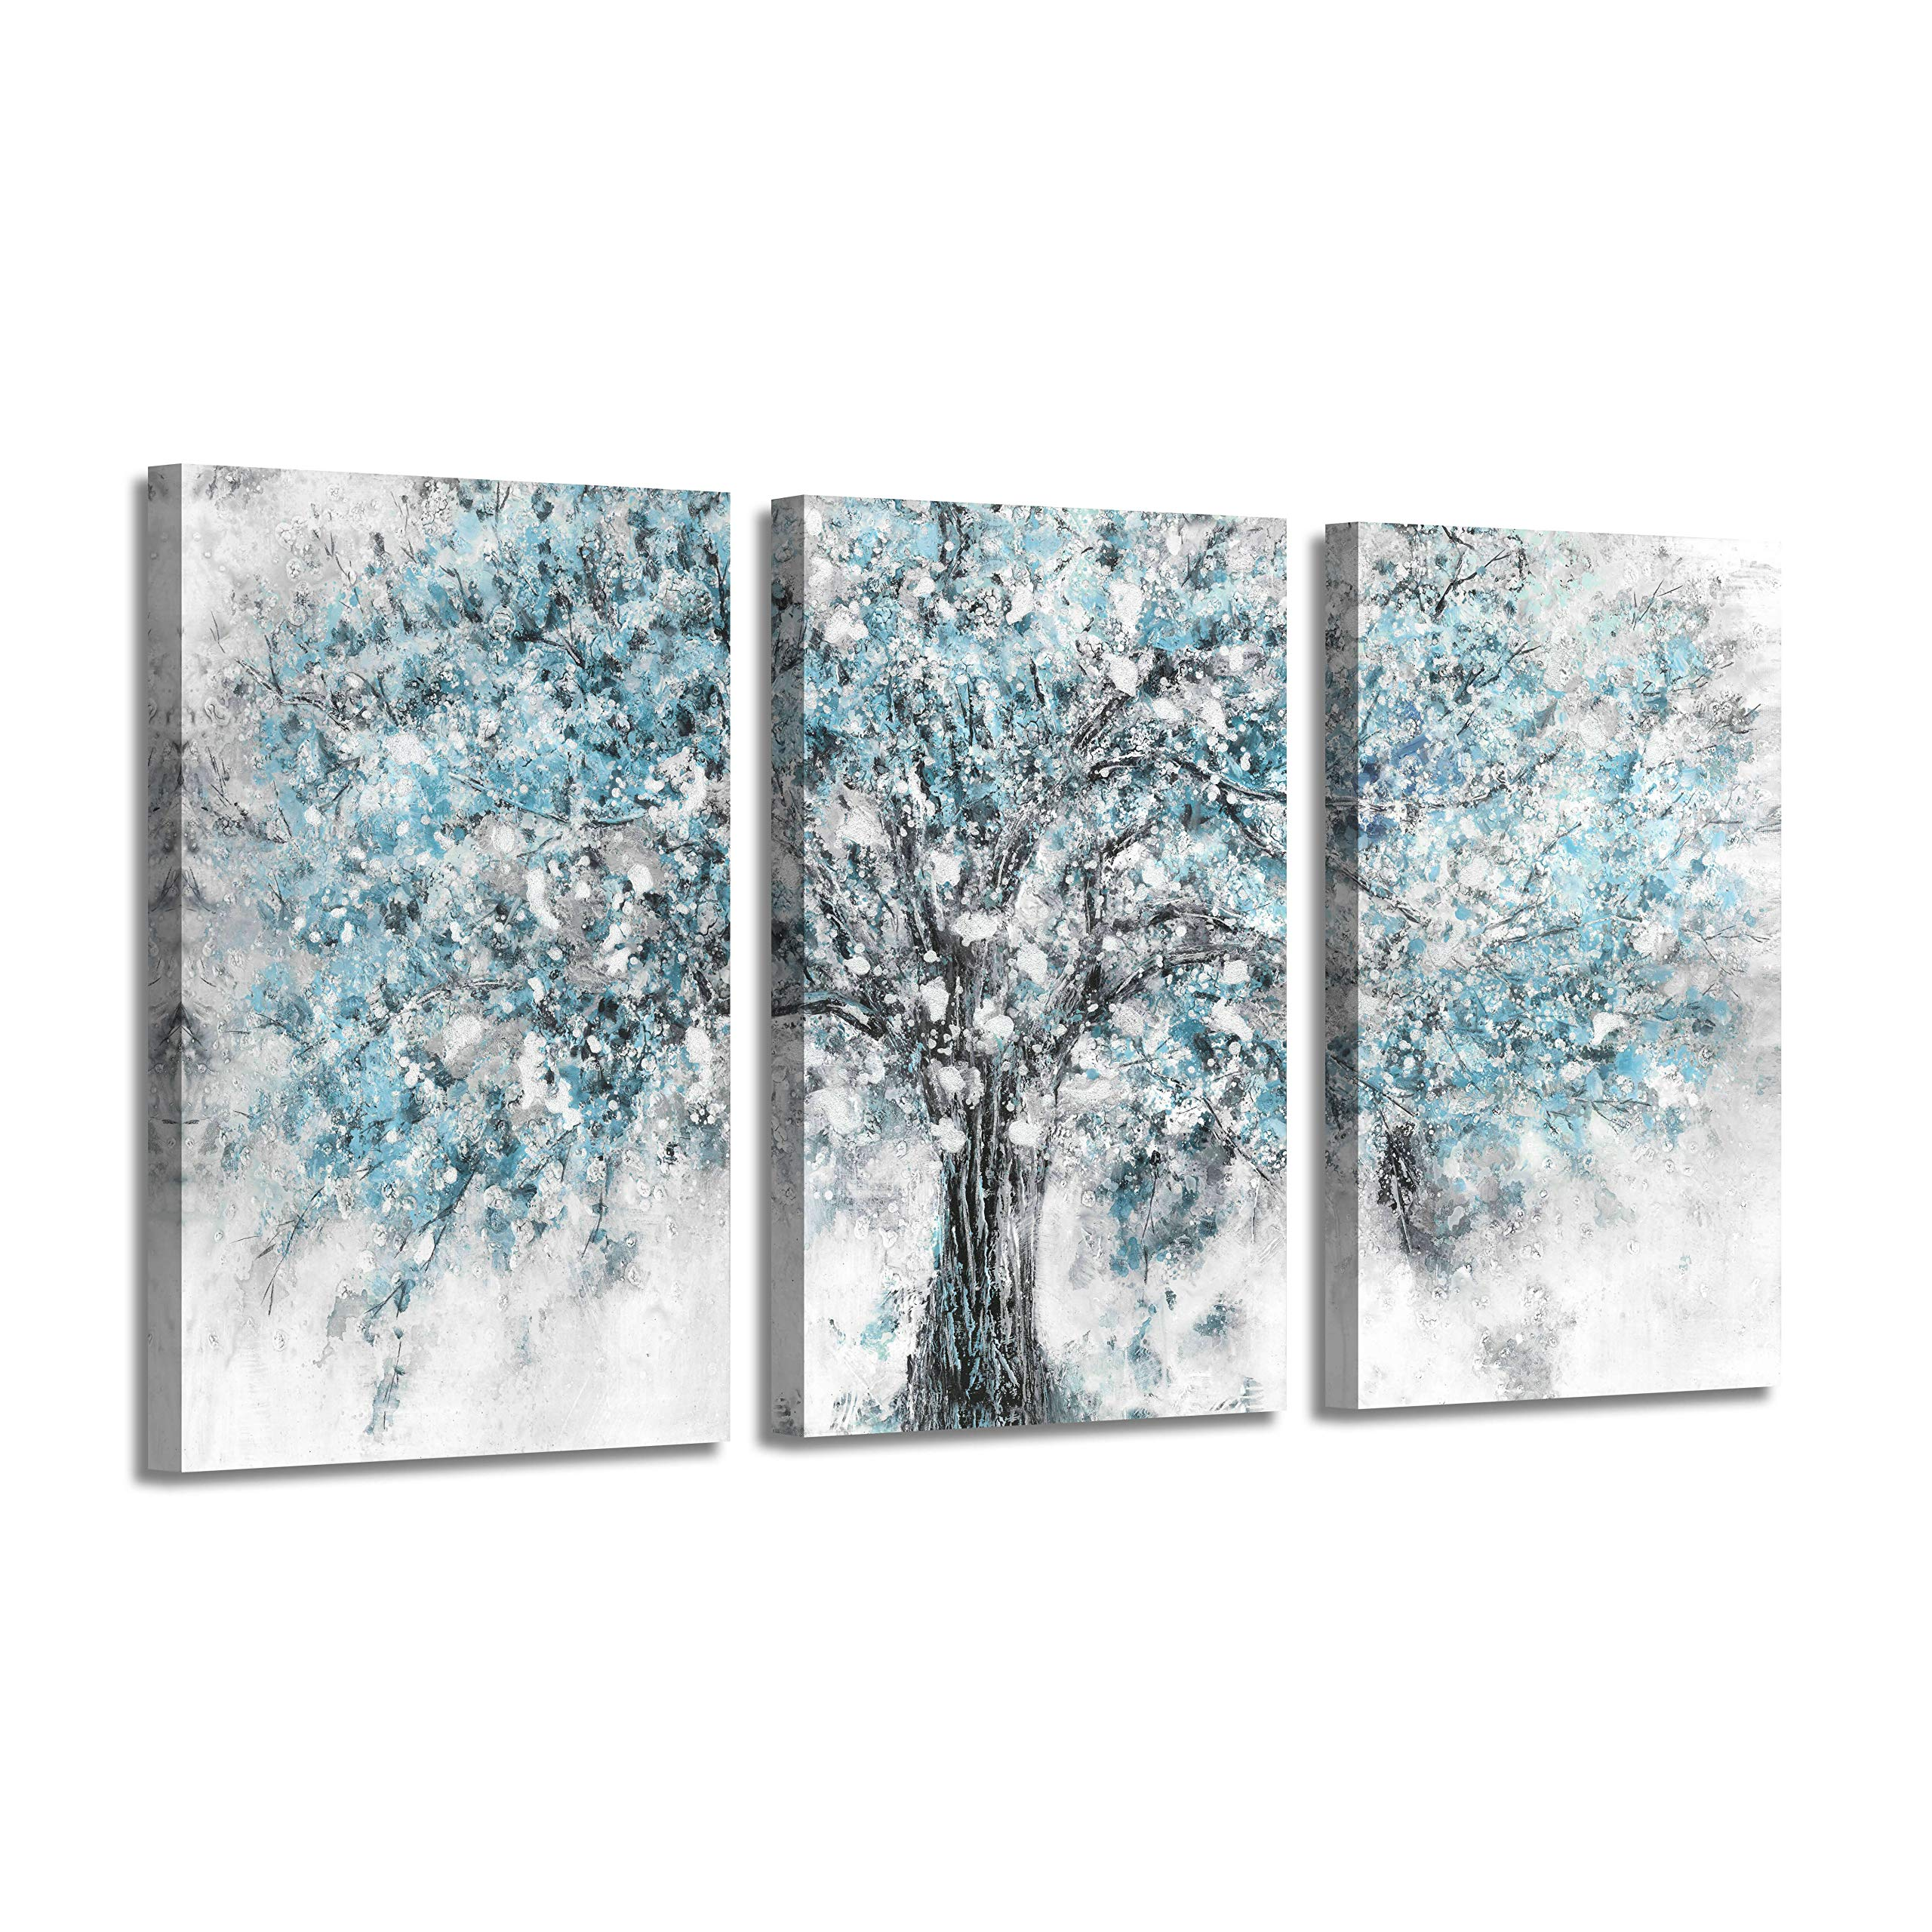 "Abstract Artwork Landscape Wall Art: Blooming Tree Painting Print on Canvas for Bedroom (Overall 48""W x 26""H,Multi-Sized)"